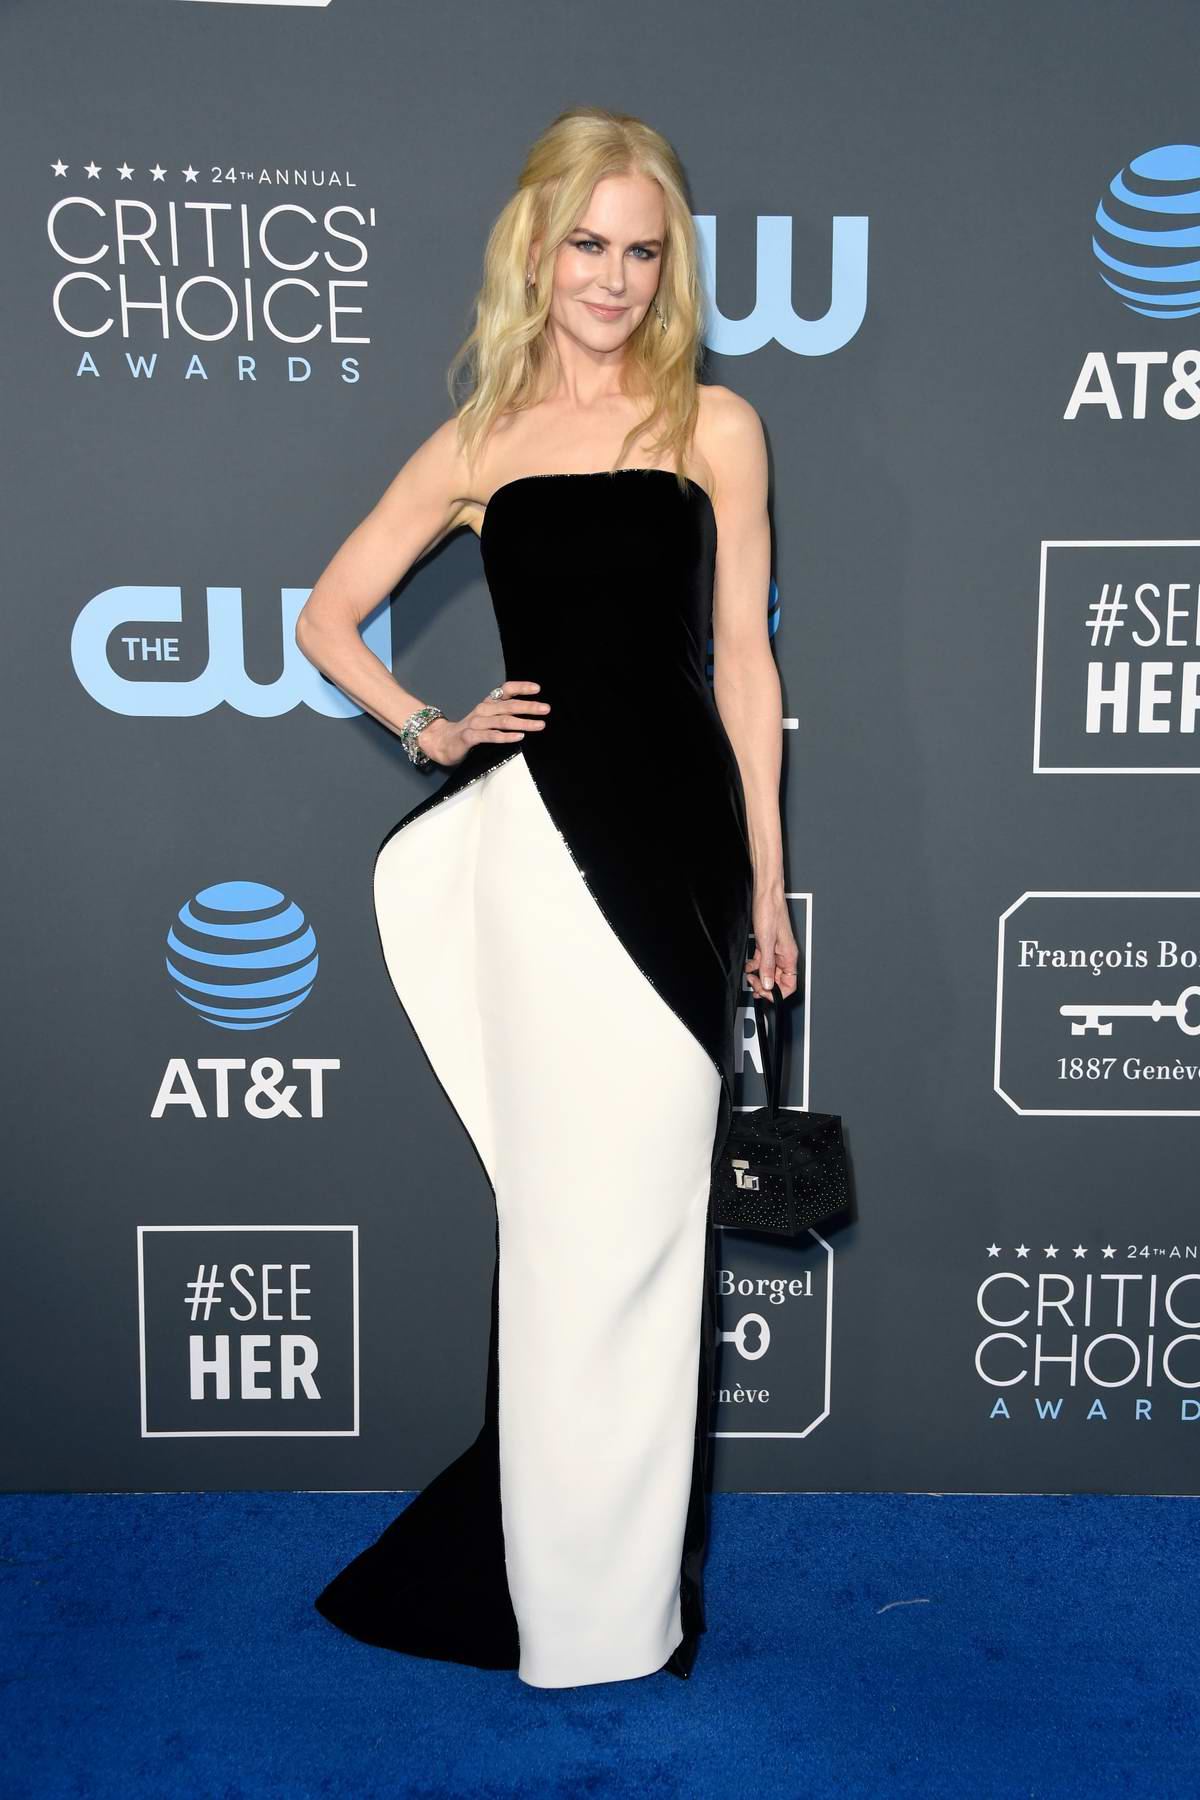 Nicole Kidman attends the 24th Annual Critics' Choice Awards at Barker Hangar in Santa Monica, California